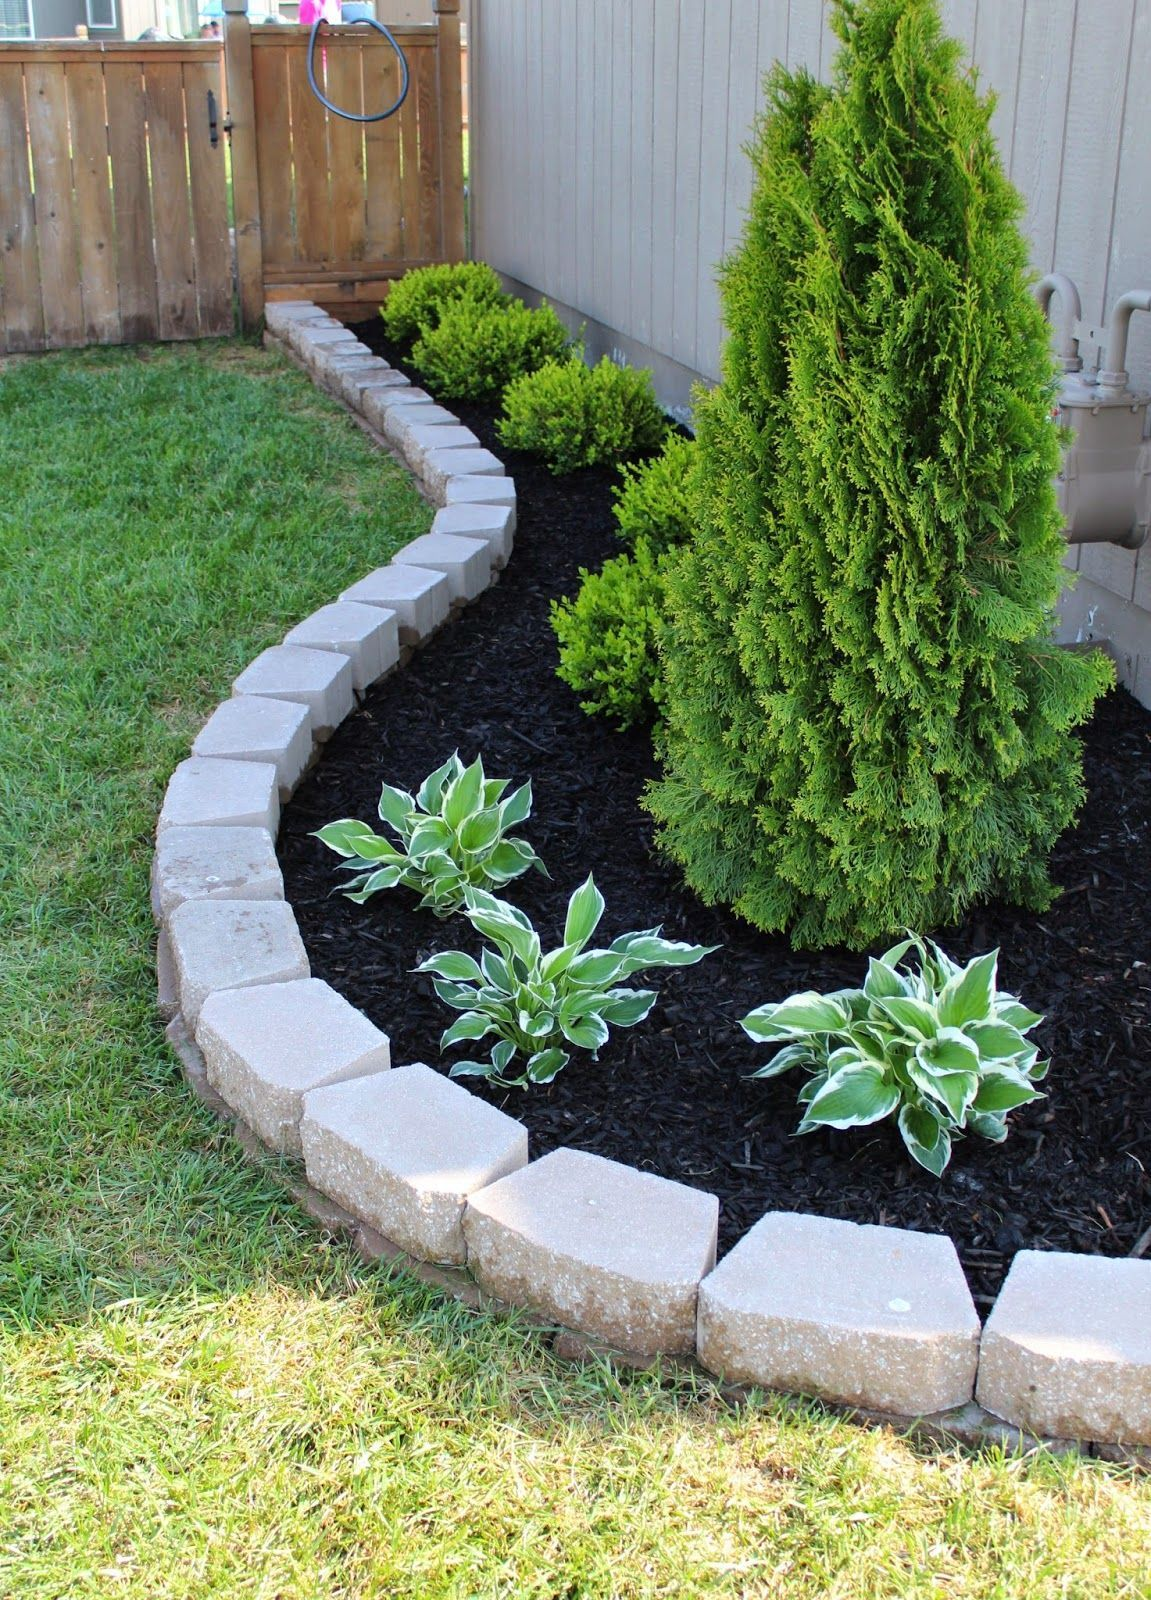 20 Easy Landscaping Ideas For Your Front Yard Front Garden Landscape Front Yard Landscaping Design Backyard Landscaping Designs